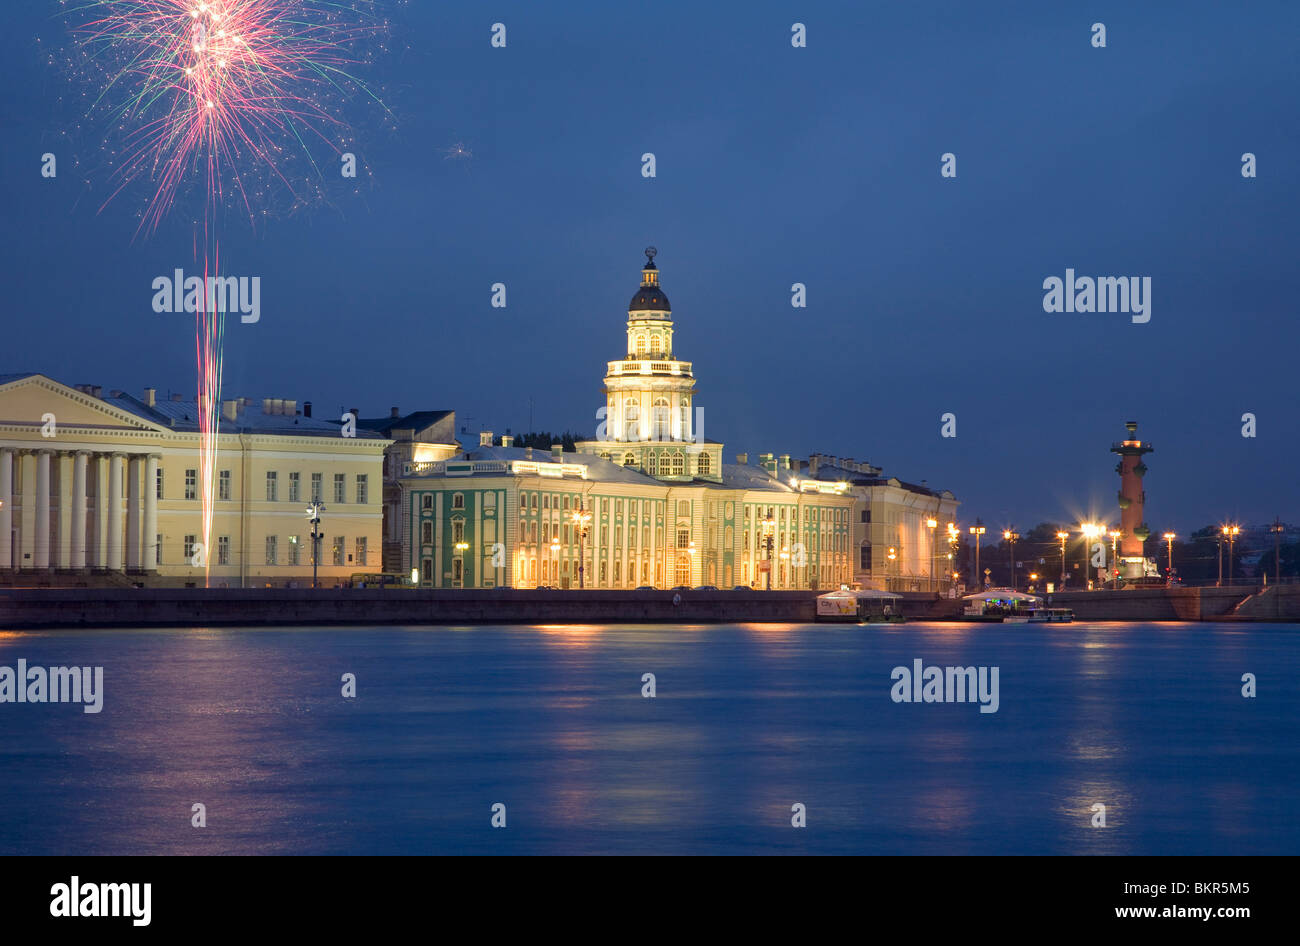 Russia, St.Petersburg; Across the Neva River with the Kunstkamera and a Rostral column while fireworks are being - Stock Image